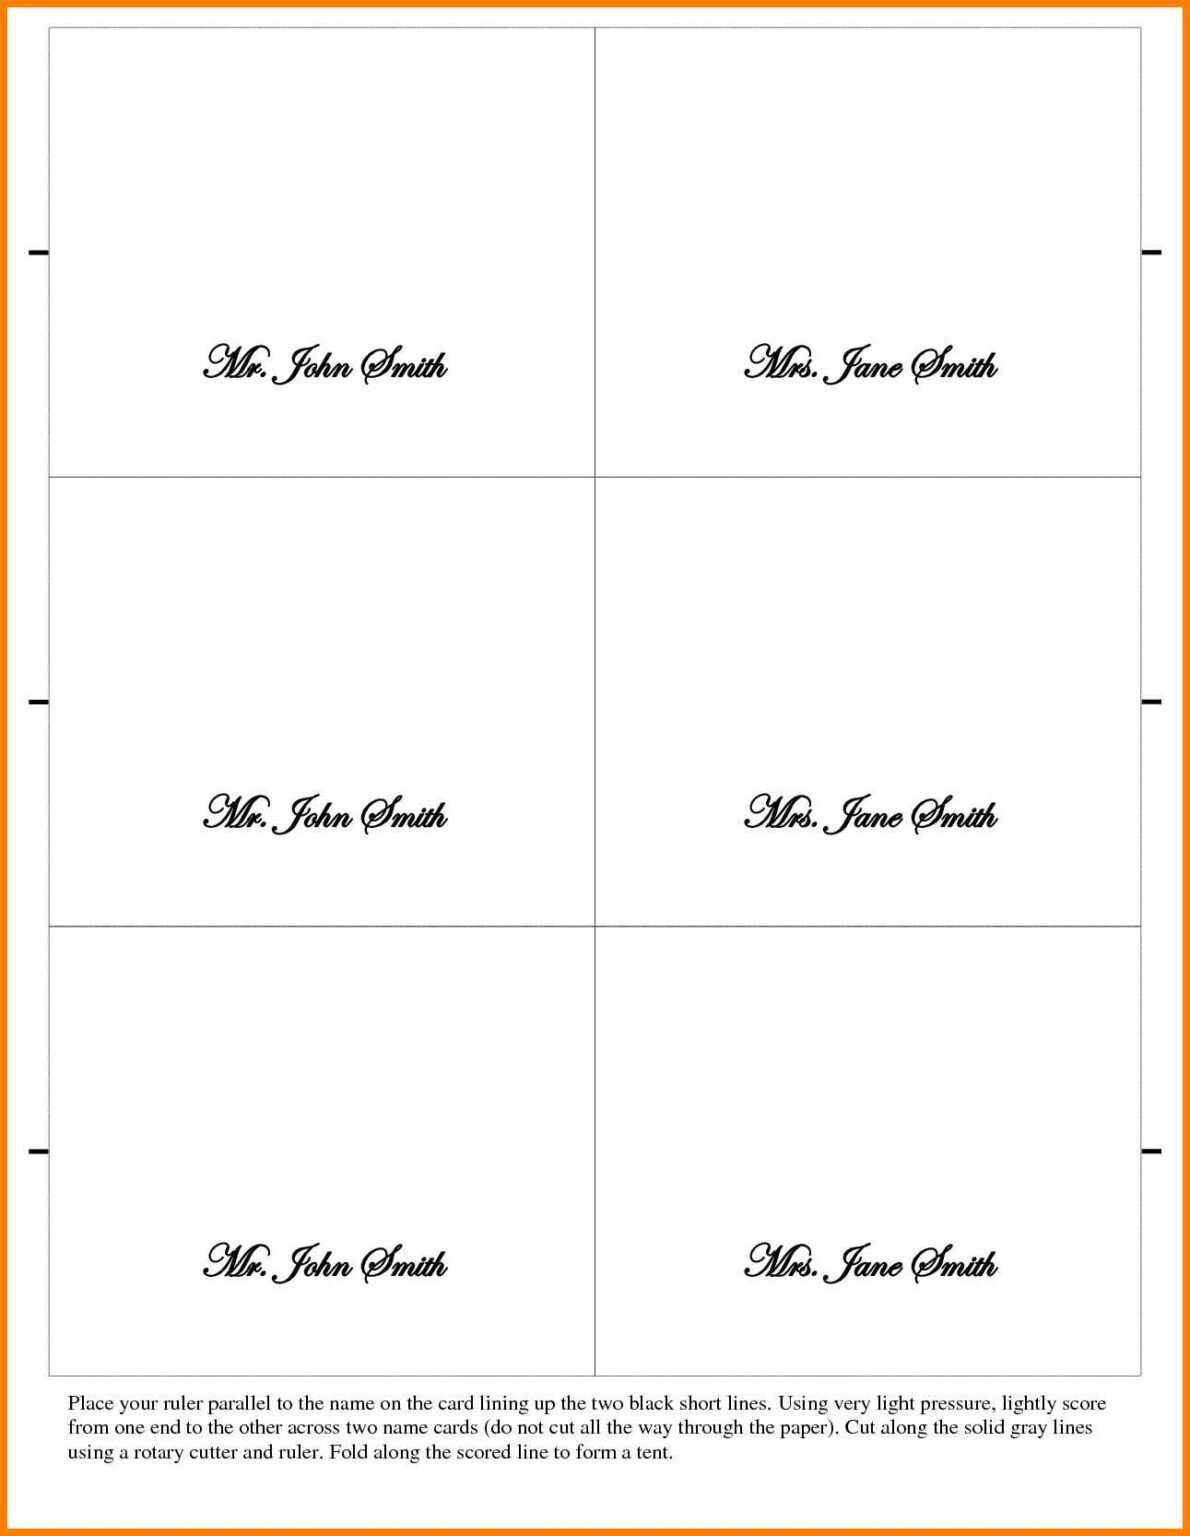 026 Place Cards Template Word Ideas Table Card Tent New Intended For Microsoft Word Place Card T Place Card Template Postcard Template Place Card Template Word